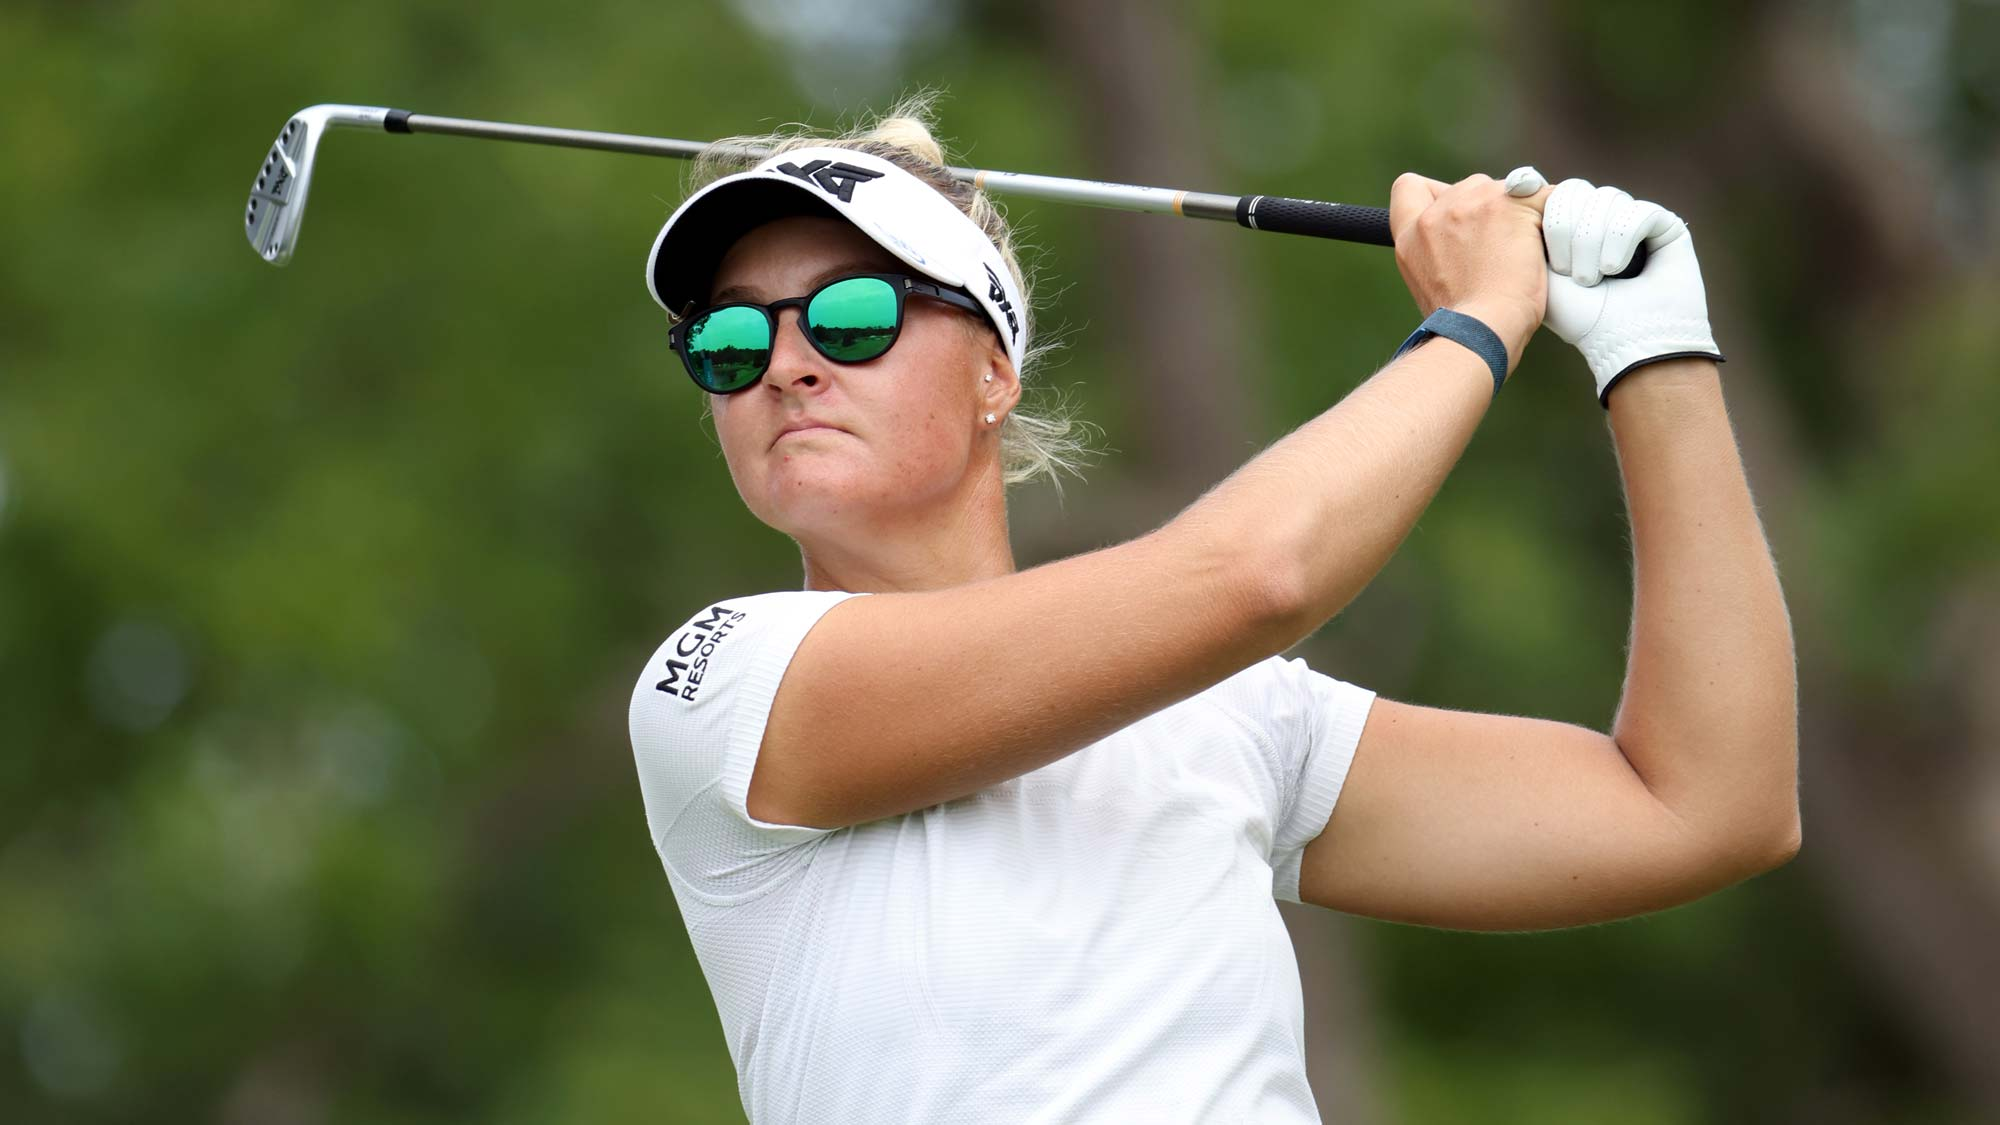 Anna Nordqvist of Sweden hits her first shot on the 3rd hole during the second round of the Walmart NW Arkansas Championship